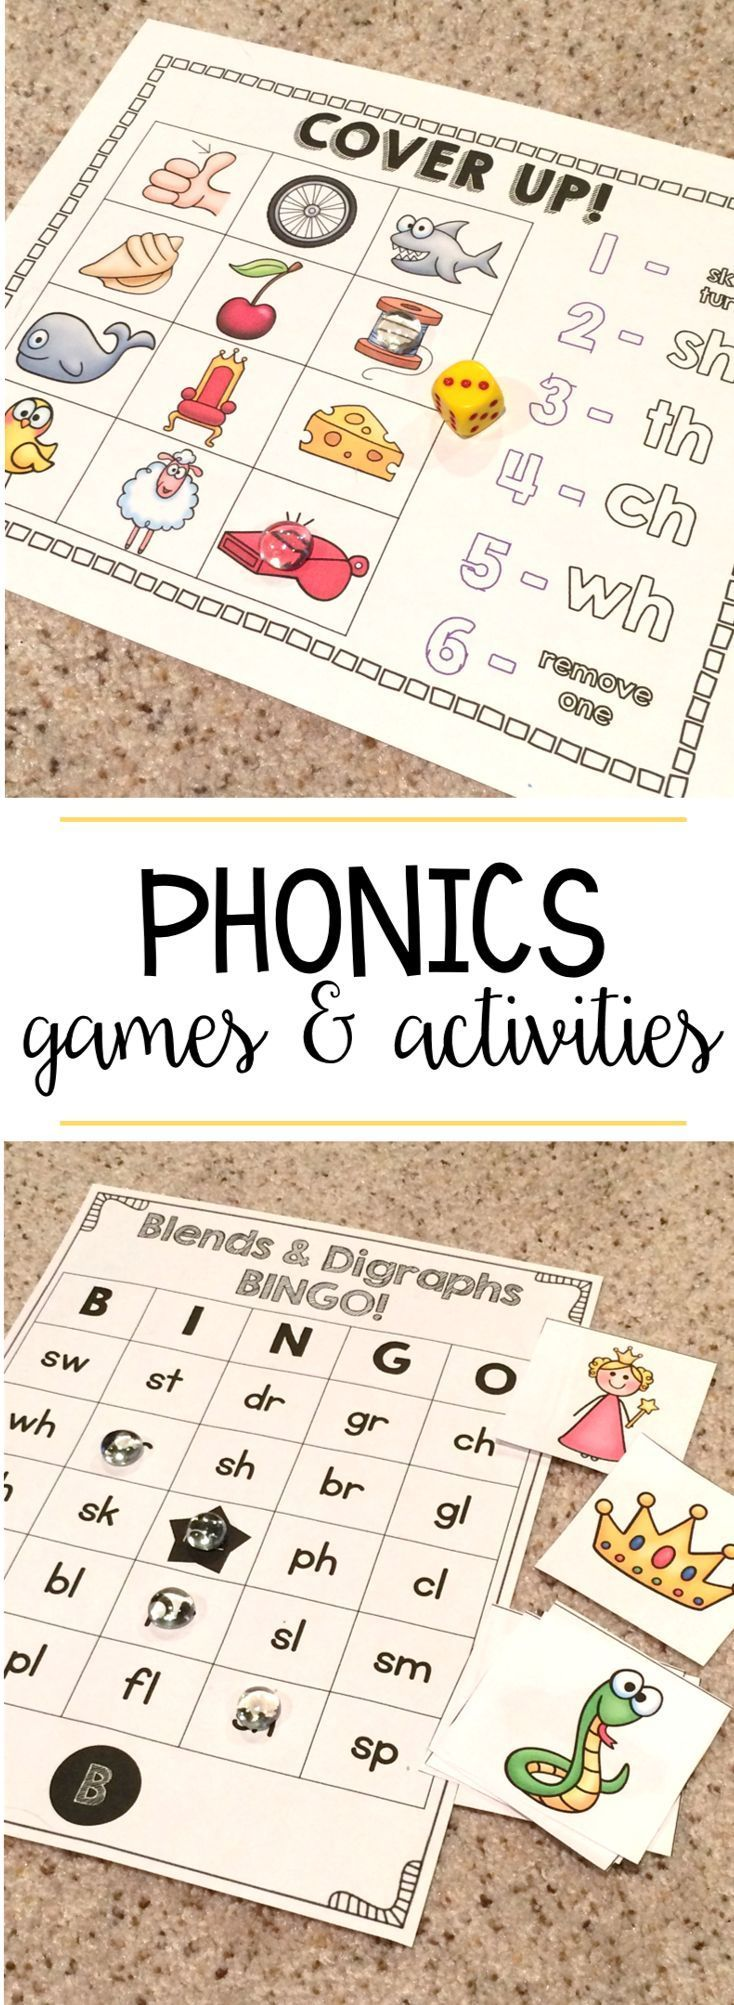 Phonics games and activities for teaching long vowels, digraphs, and consonant blends!